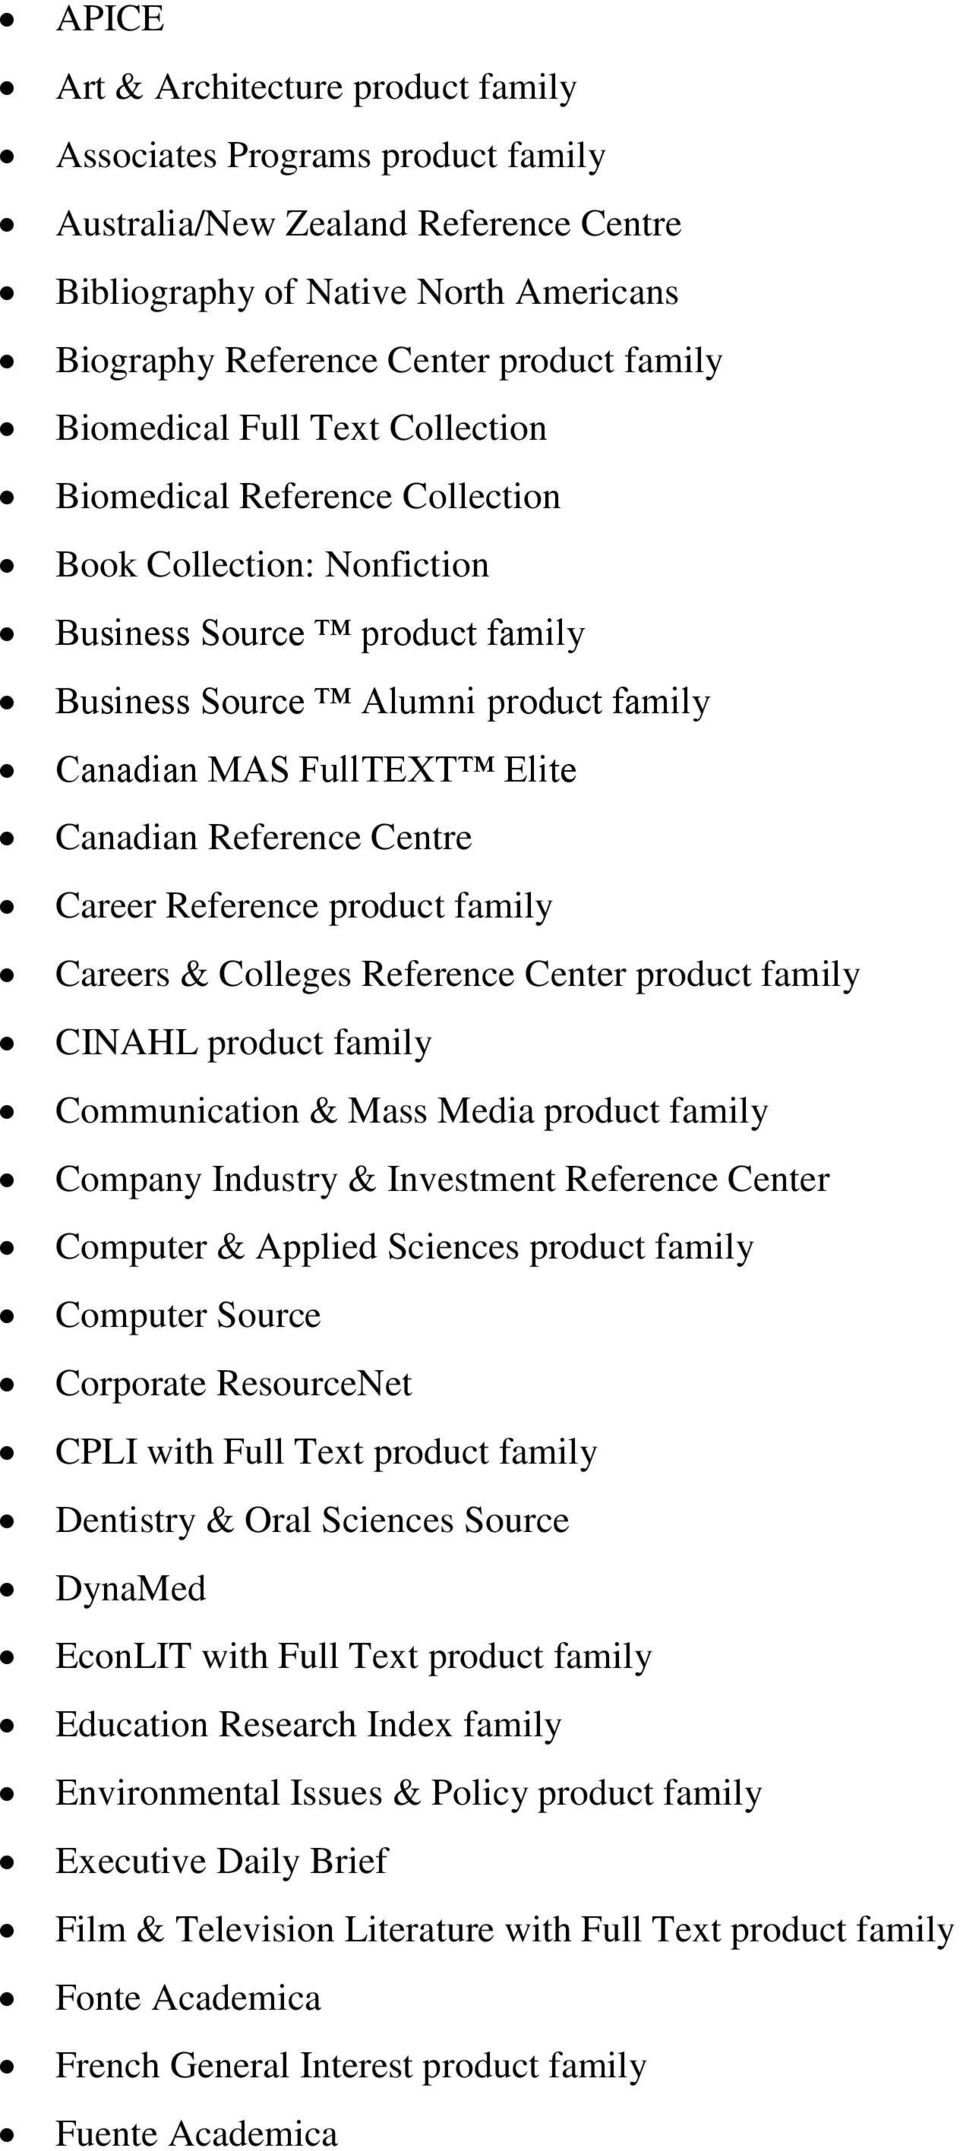 Reference Centre Career Reference product family Careers & Colleges Reference Center product family CINAHL product family Communication & Mass Media product family Company Industry & Investment